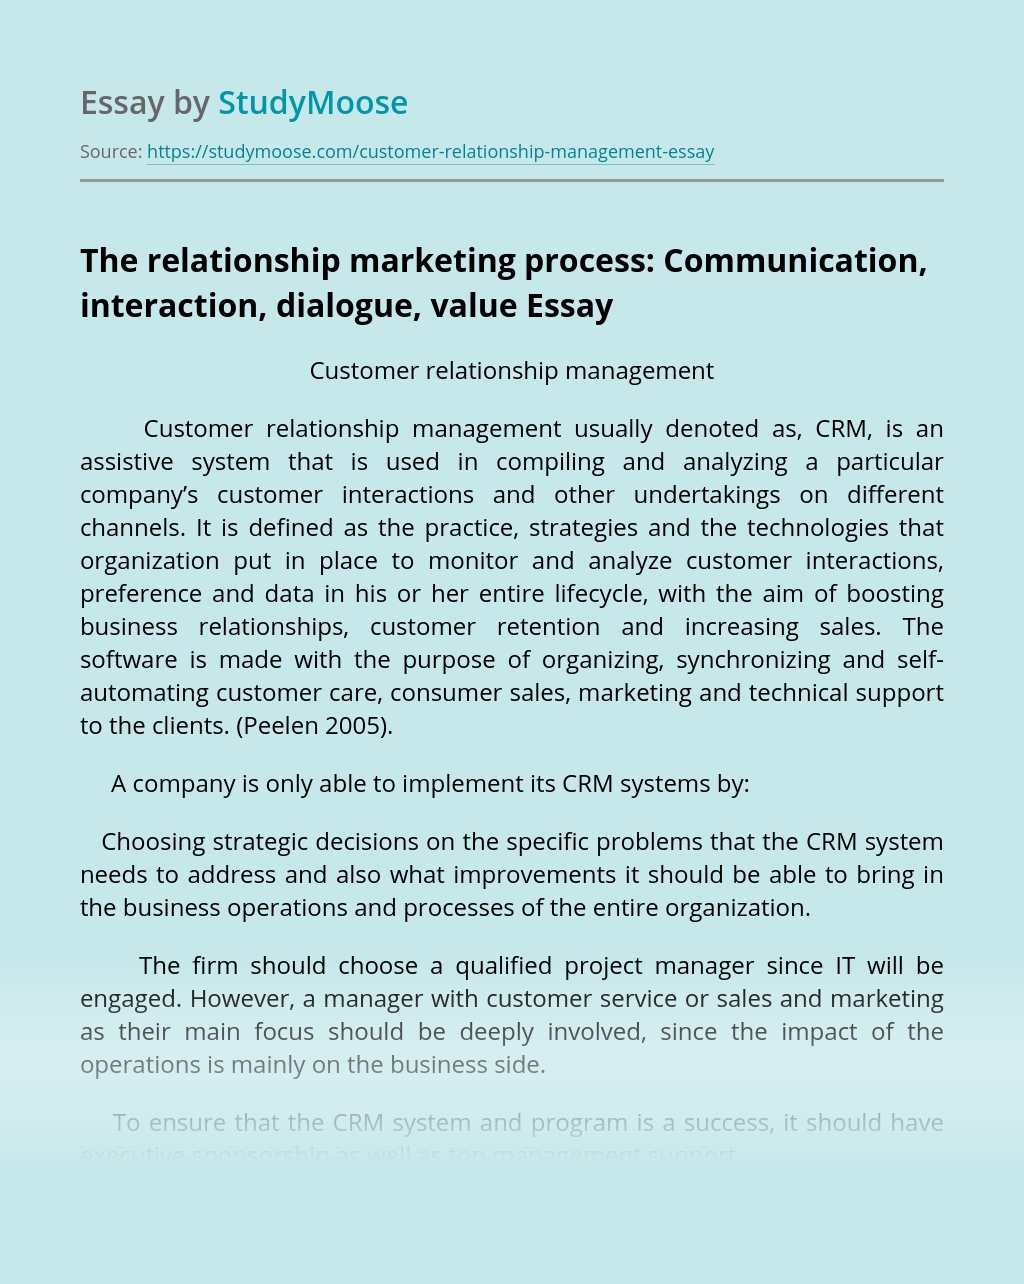 The relationship marketing process: Communication, interaction, dialogue, value